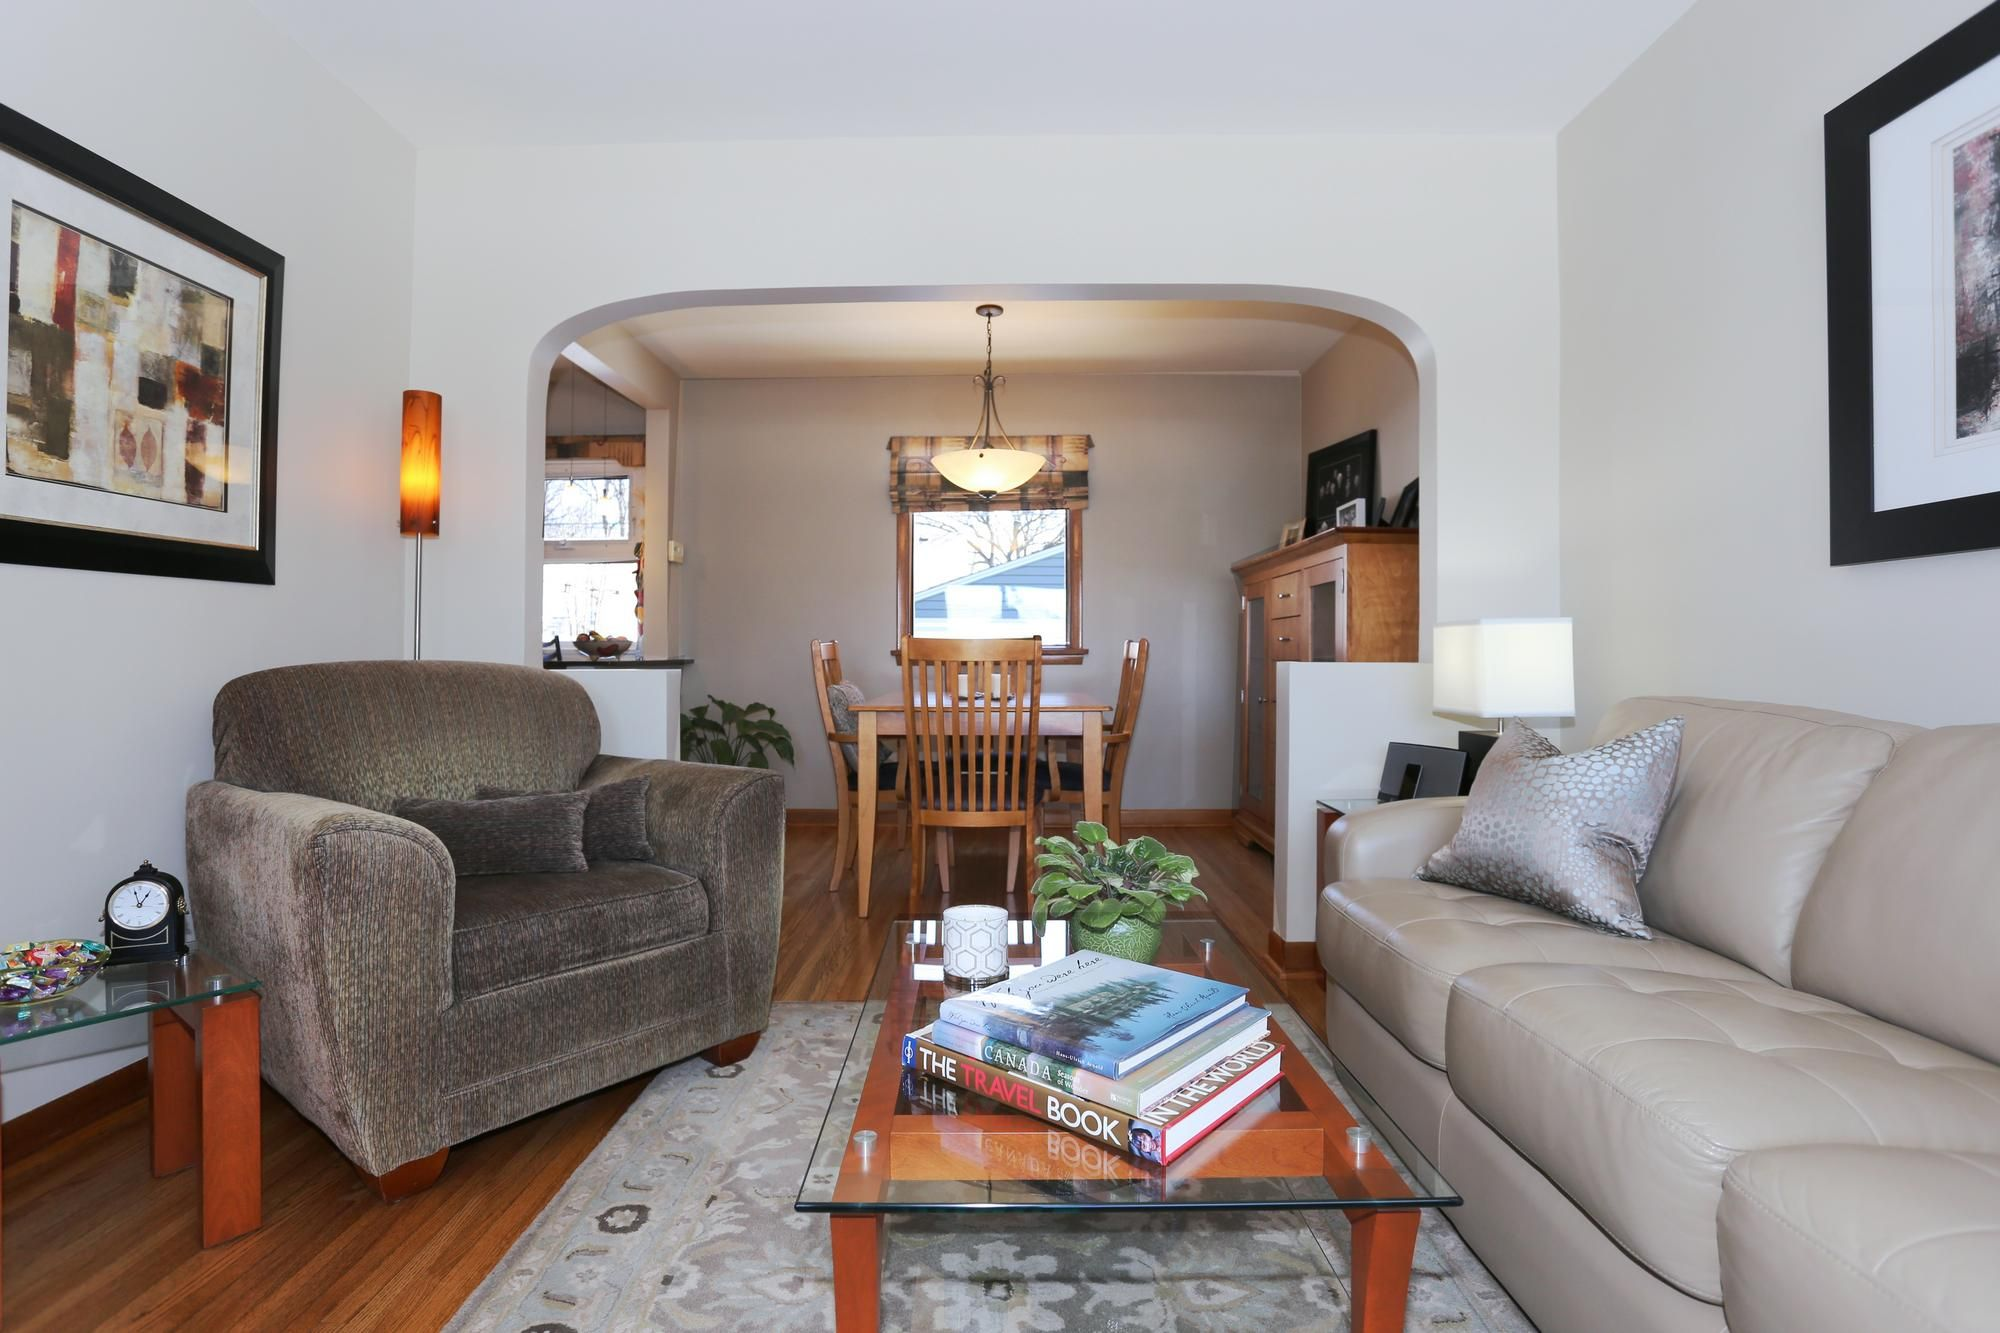 Photo 5: Photos: 349 Guildford Street in Winnipeg: St James Single Family Detached for sale (5E)  : MLS®# 1807654